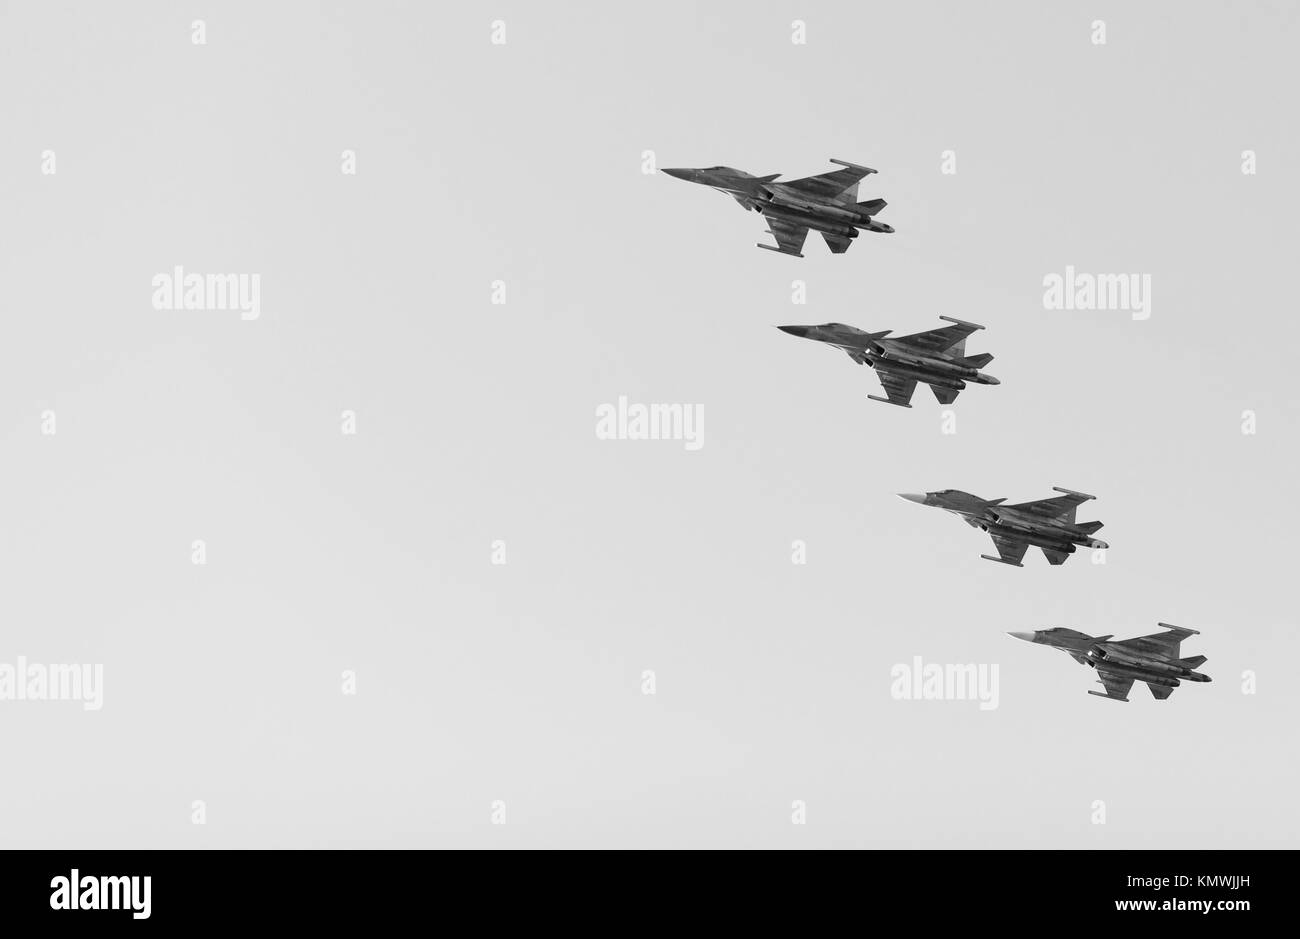 Russian fighters in the sky on the feast of victory day on 9 may. Saint-Petersburg, Russia - May 09, 2017. Stock Photo